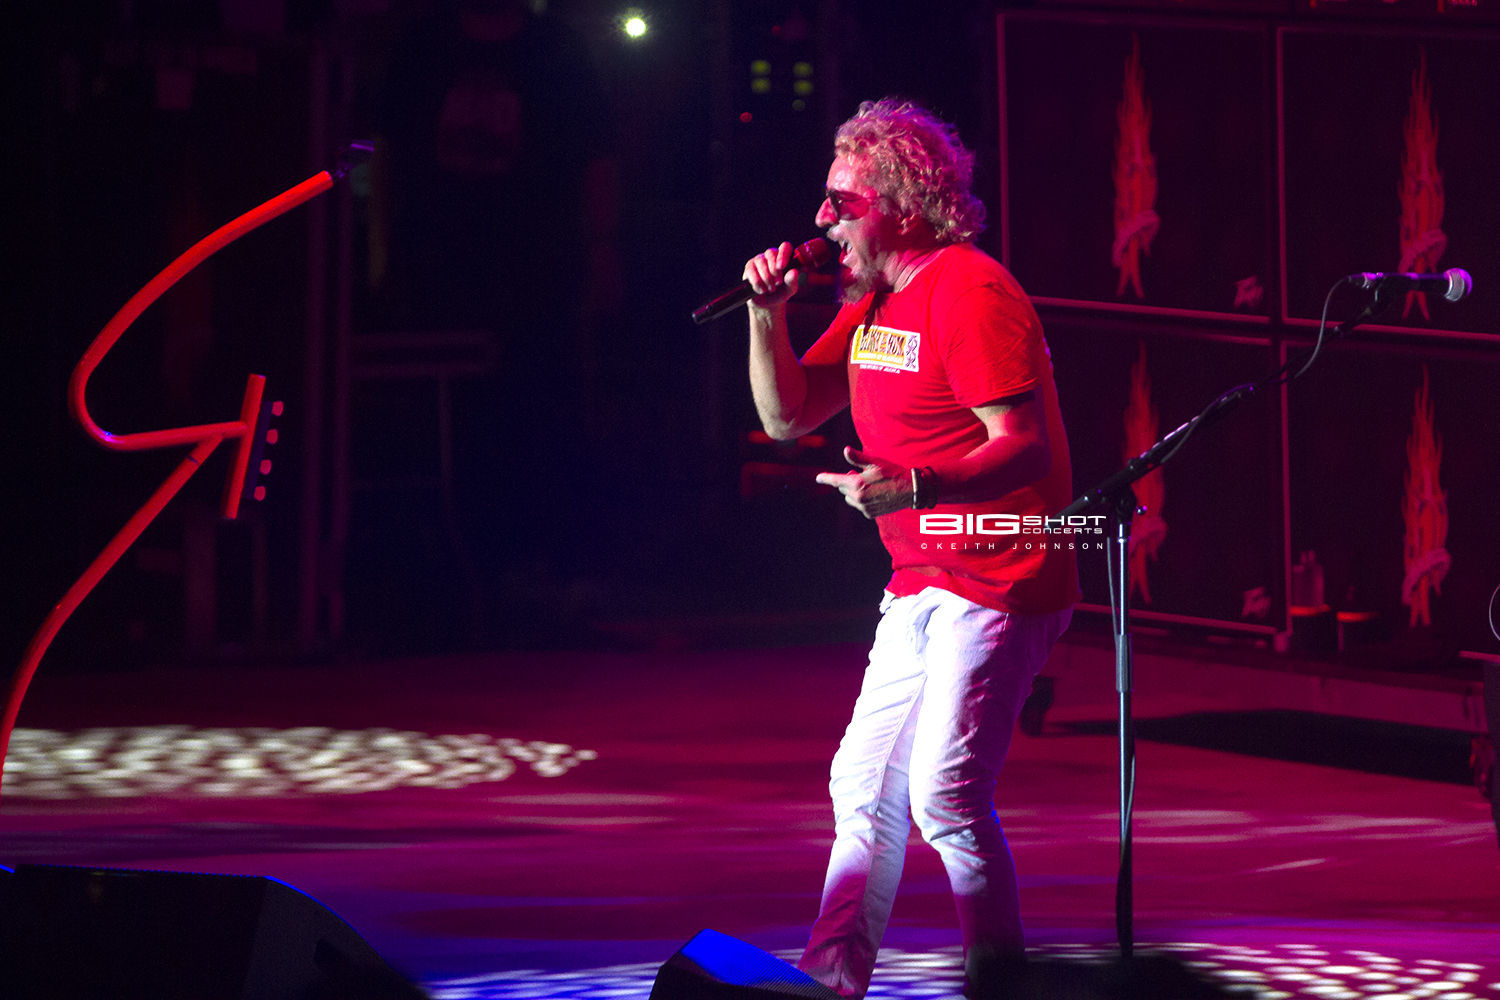 Sammy Hagar sings with The Circle